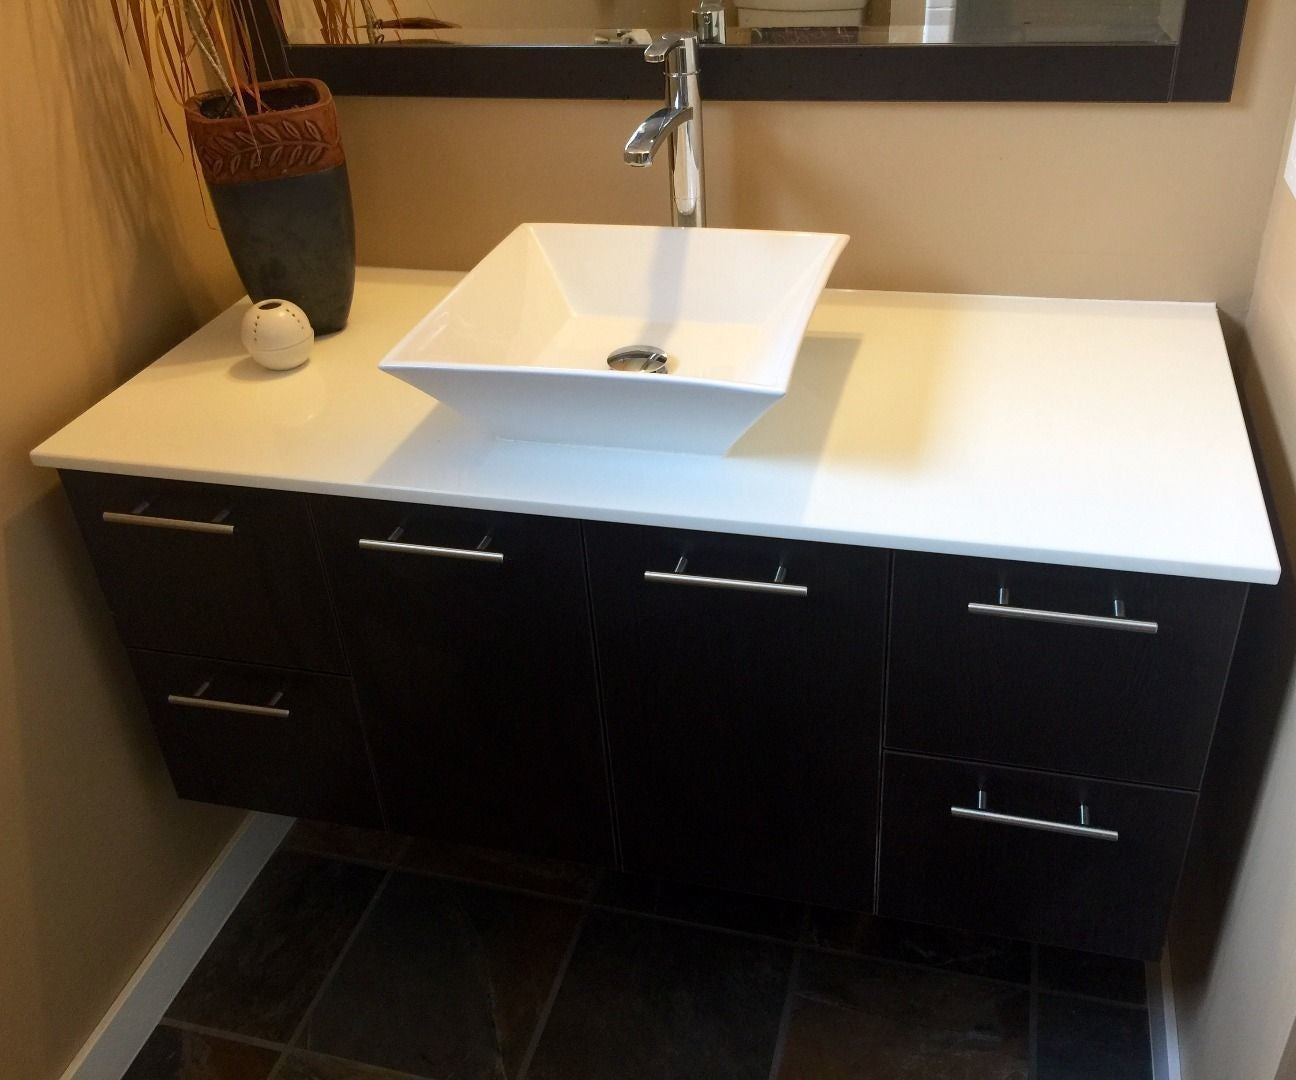 How To Install A Wall Hung Vanity 5 Steps With Pictures Instructables